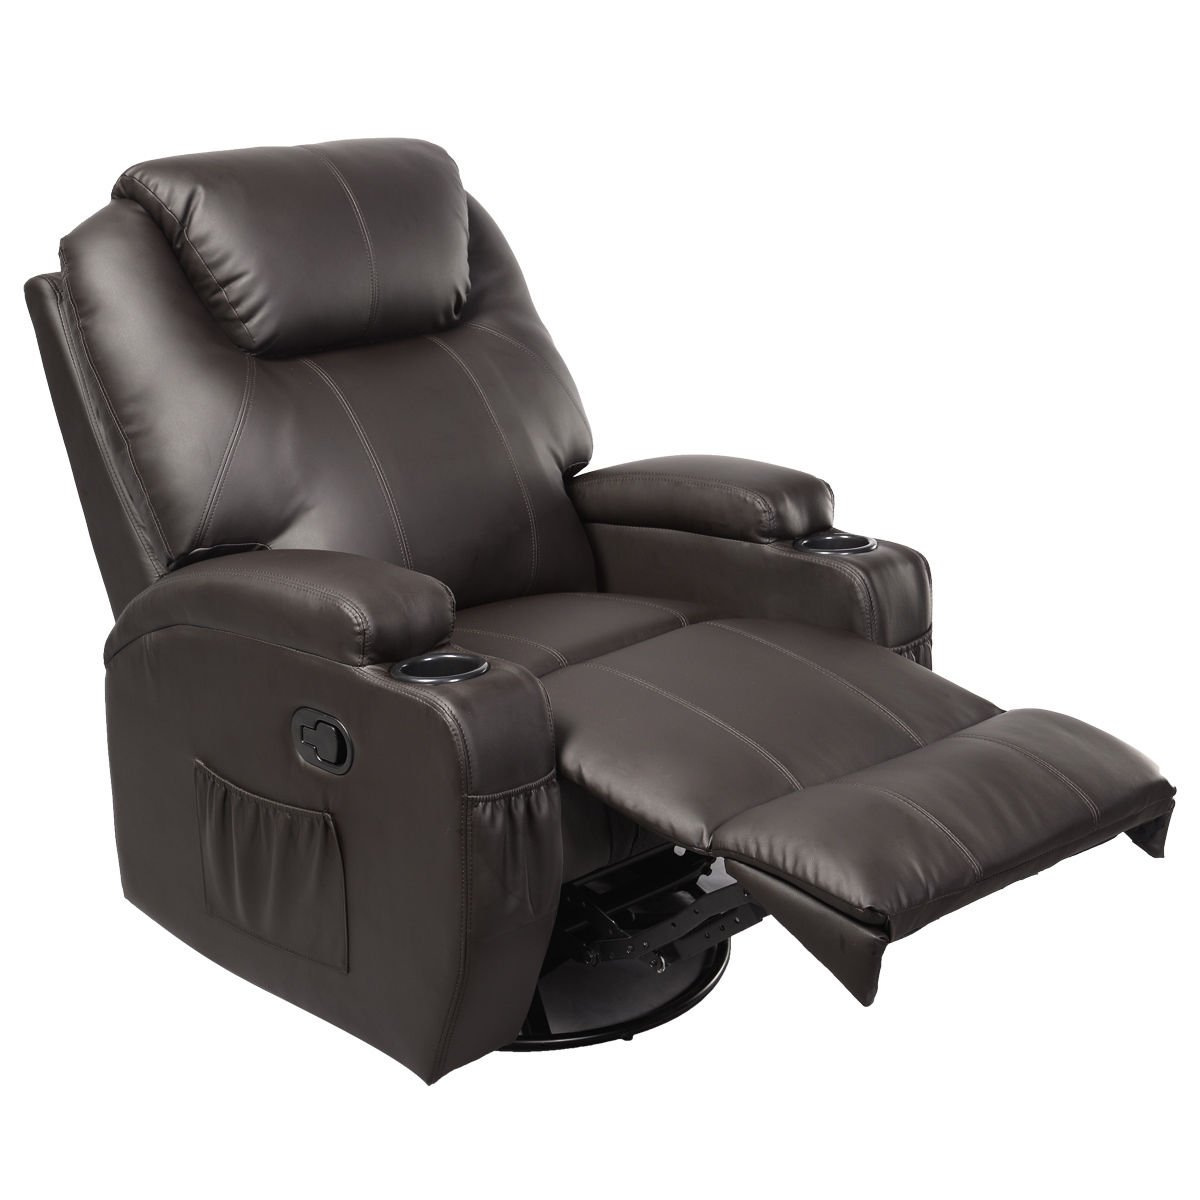 This Ergonomic Sofa Sports Outstanding Craftsmanship And Great Attention To  Detail.